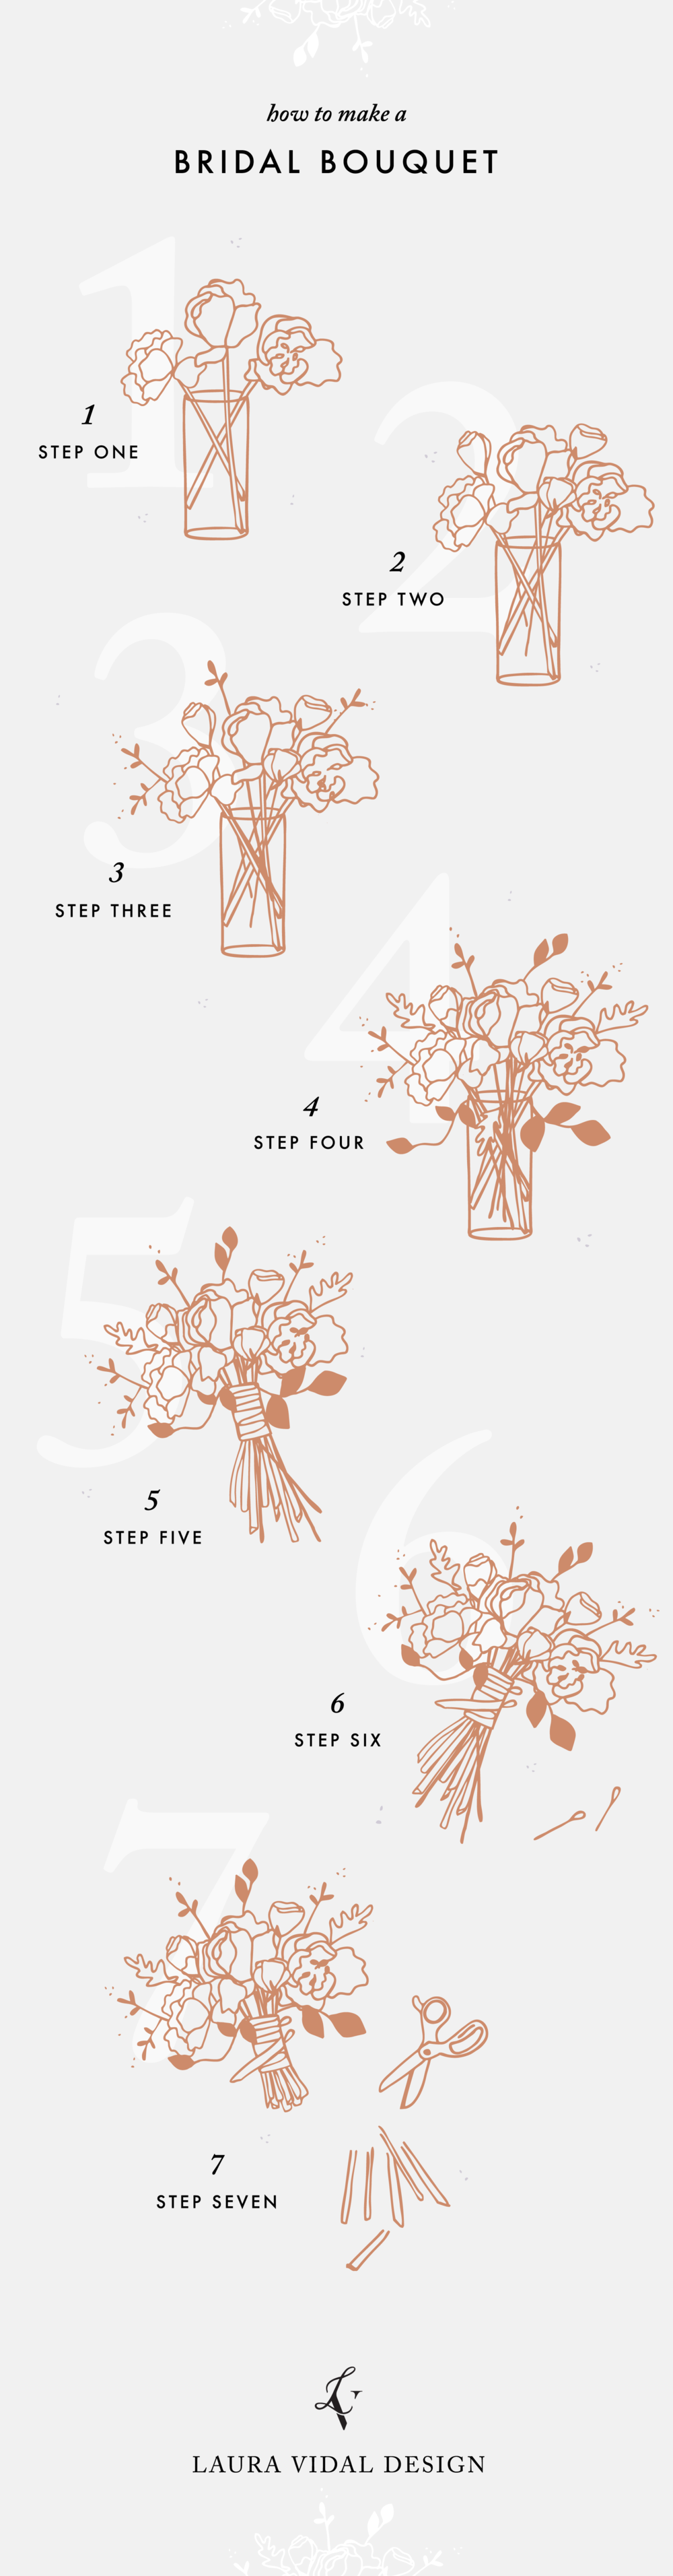 laura-vidal-design-how-to-bridal-bouquet.png